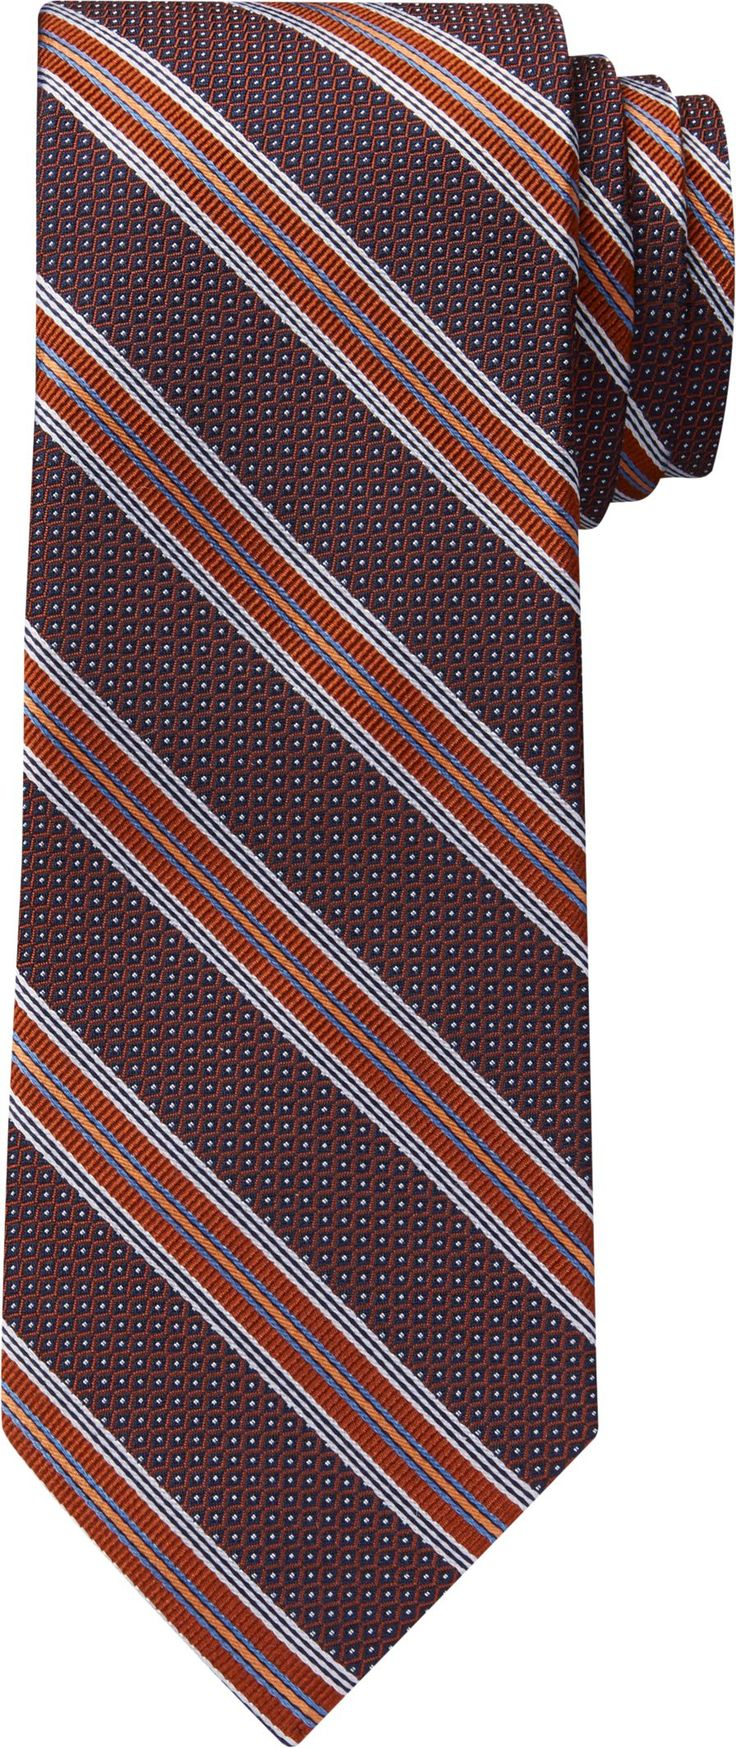 Reserve Collection Stripe Tie - Long